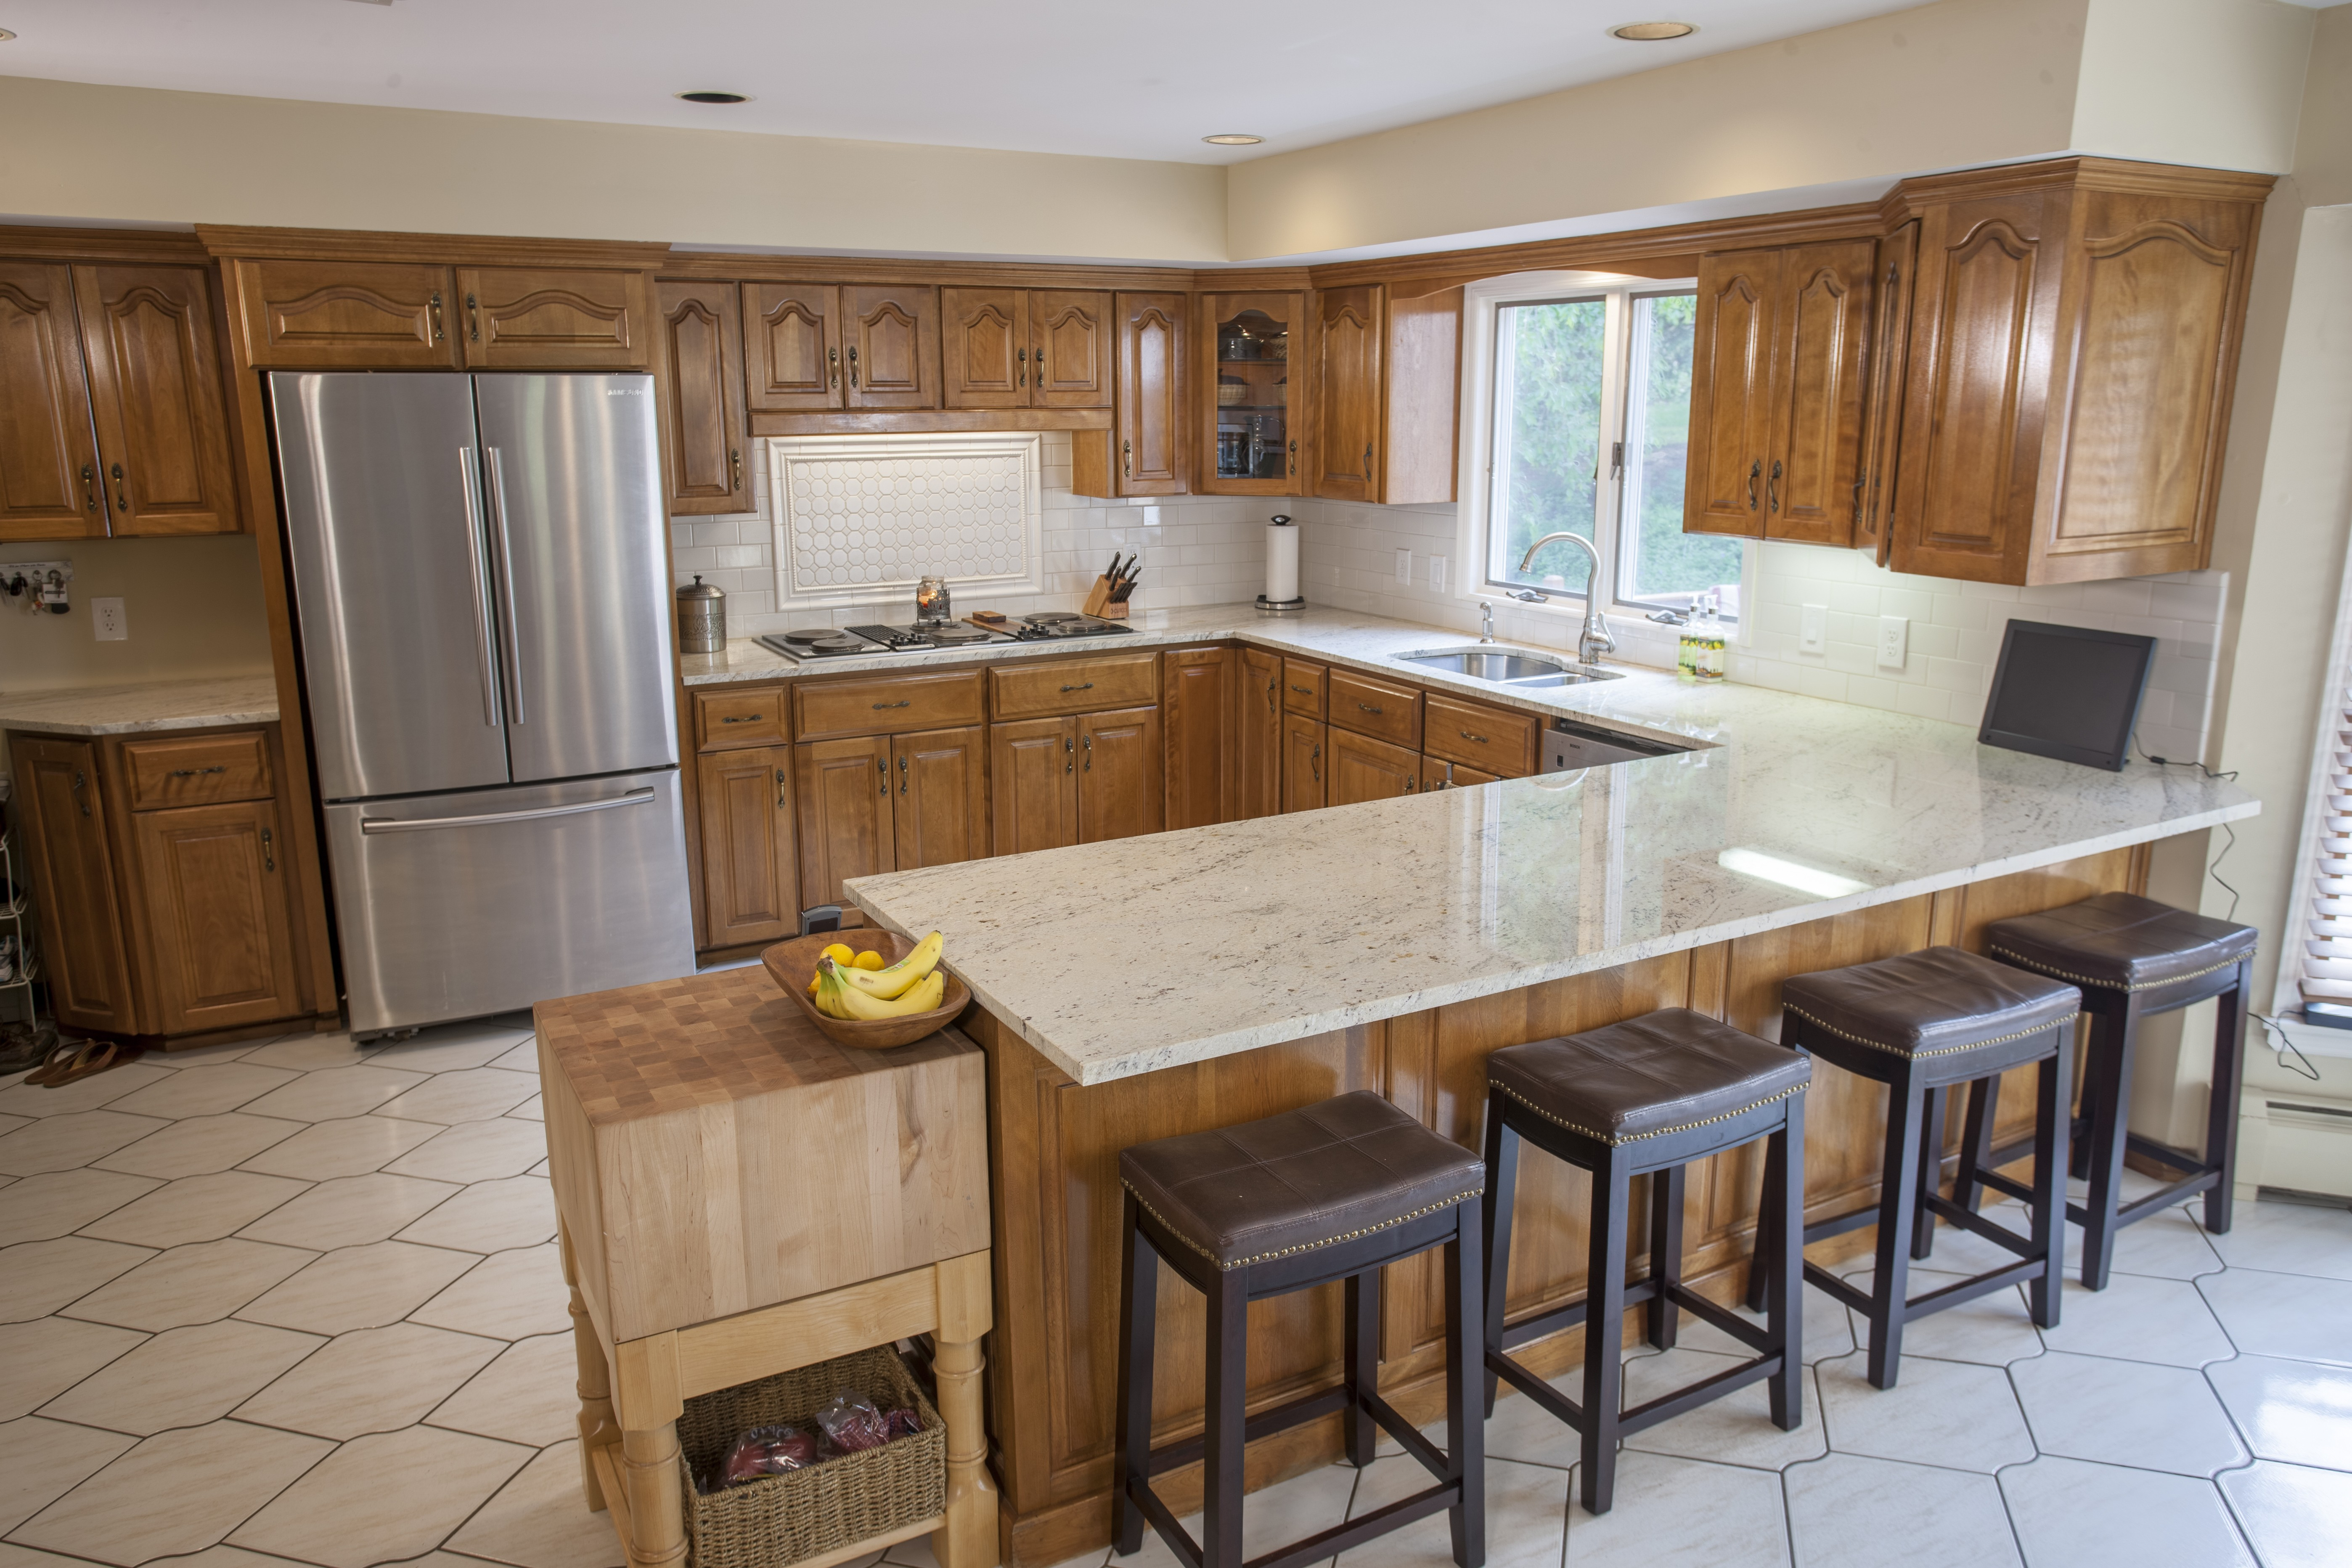 Top 5 Light Color Granite Countertops   Marble.com on What Color Cabinets Go Best With Black Granite Countertops  id=99415